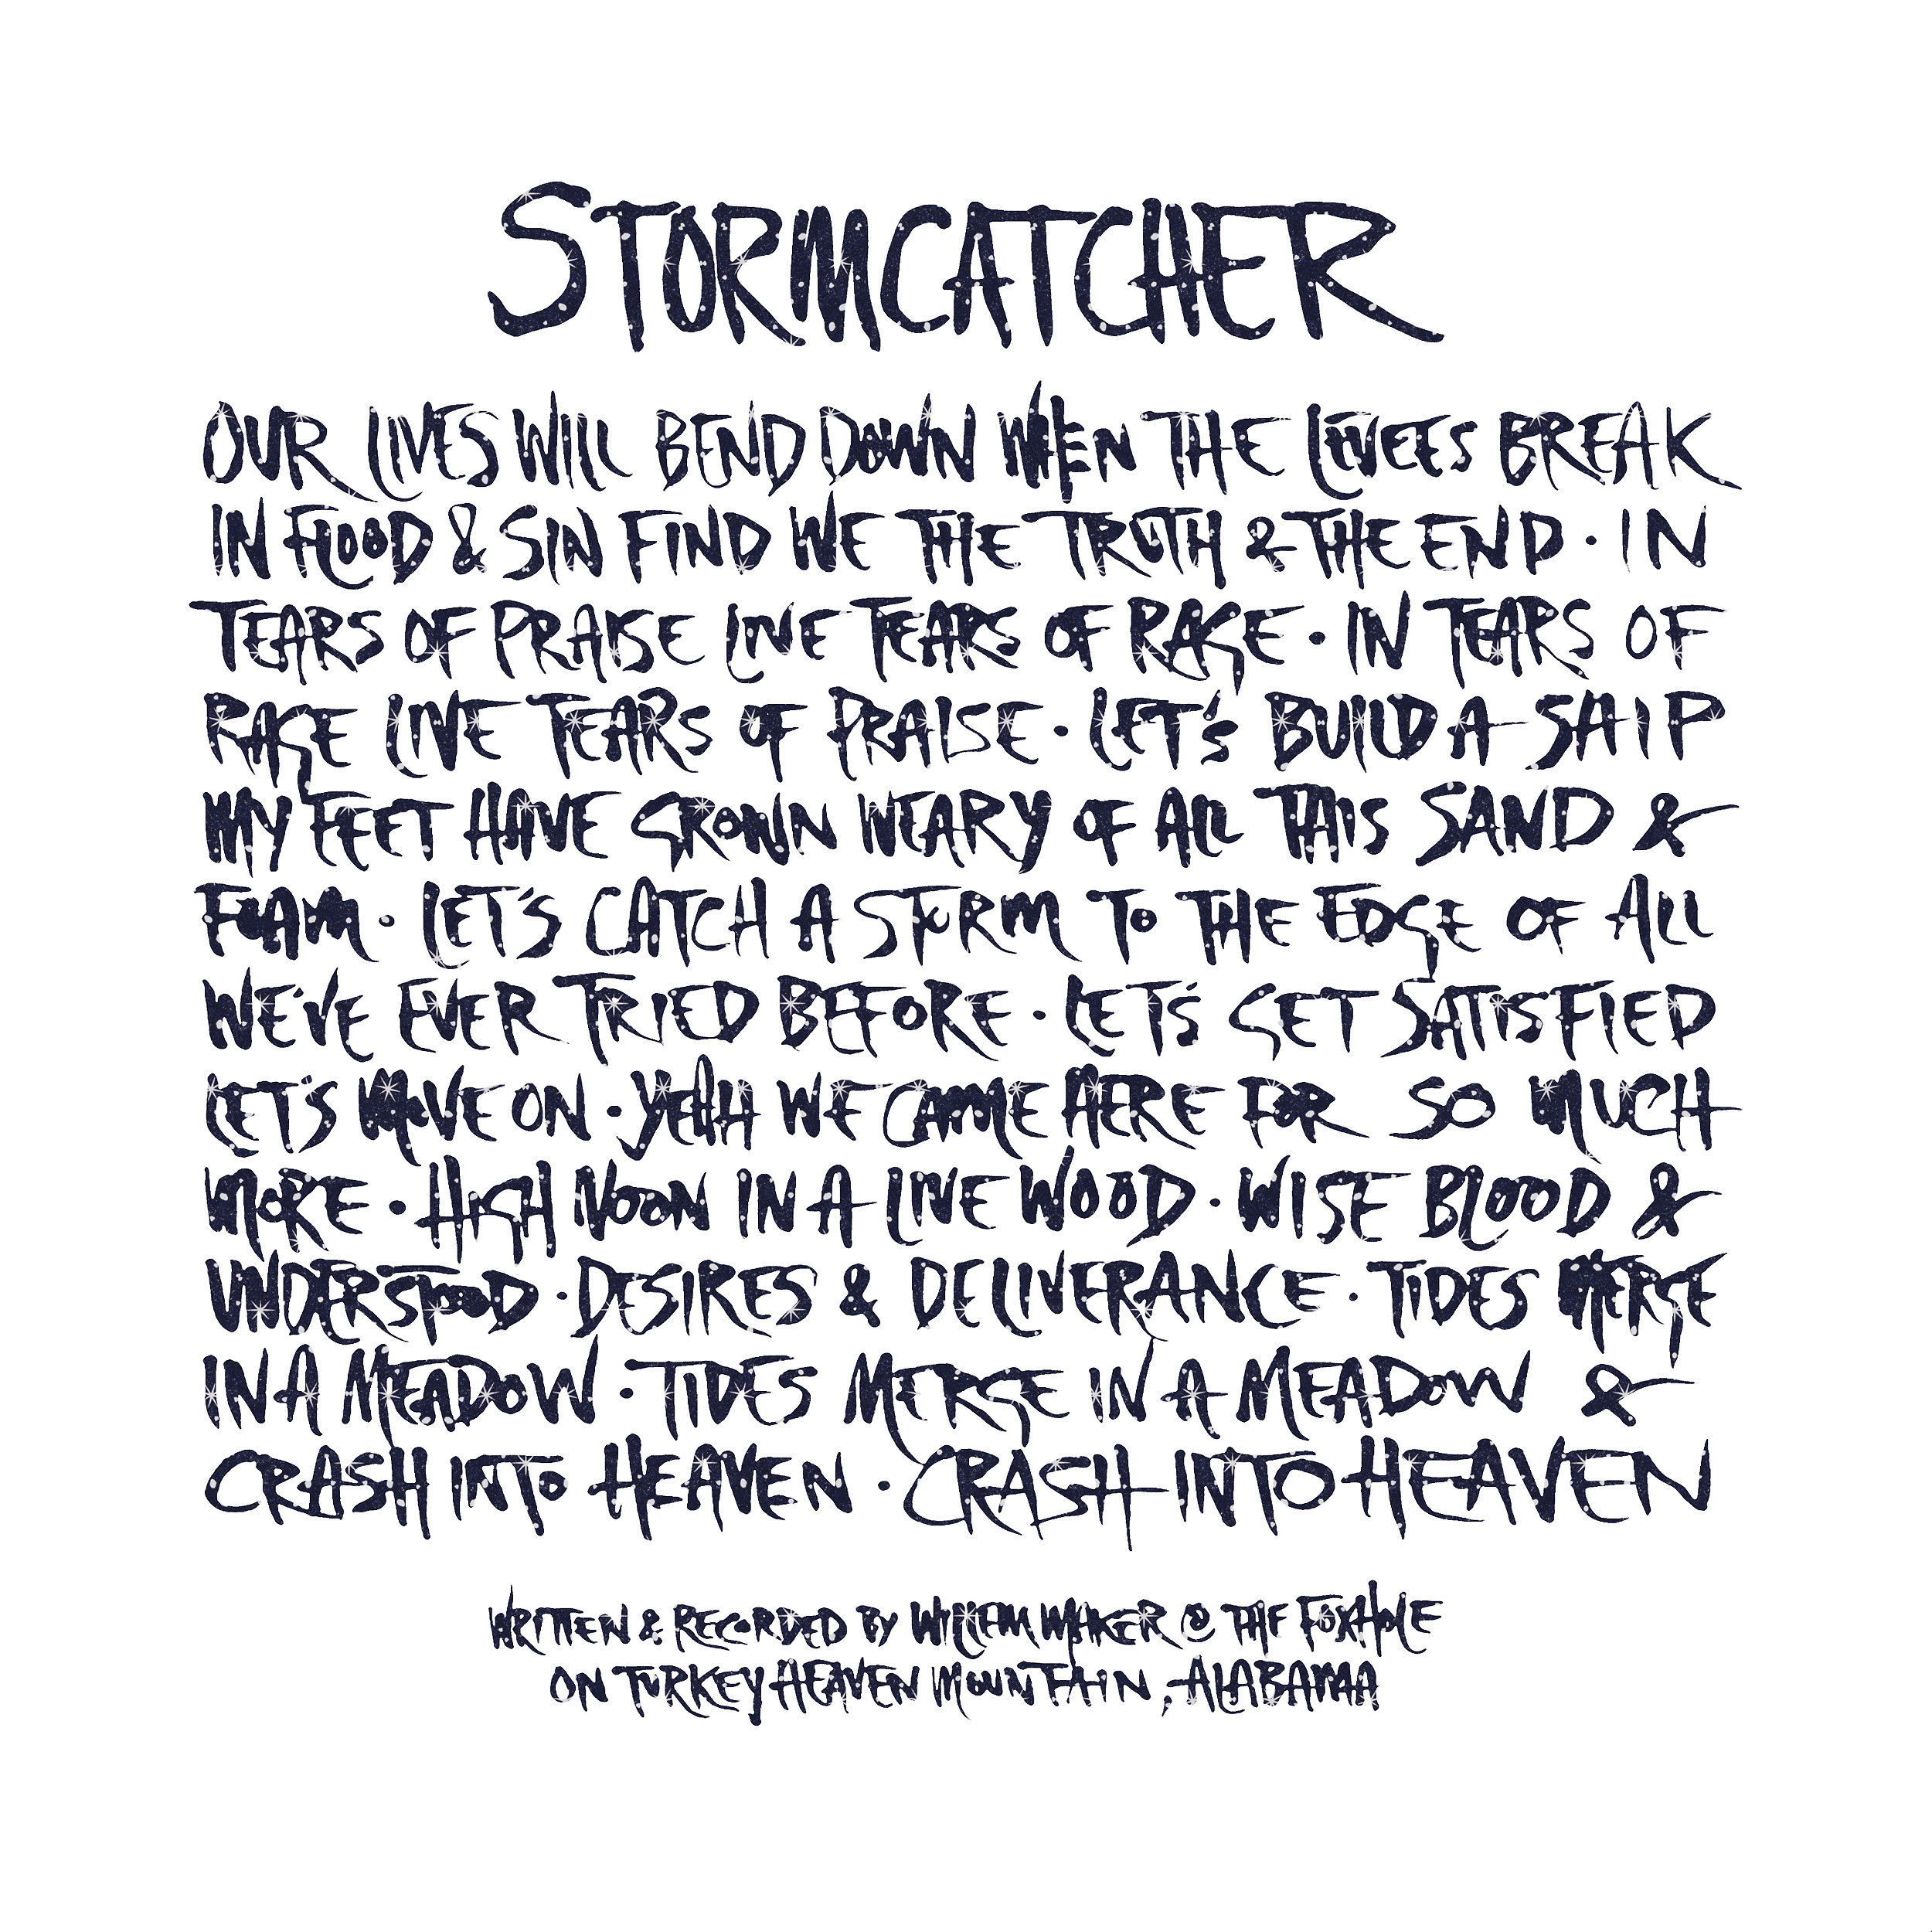 stormcatcher-lyrics-ss.jpg